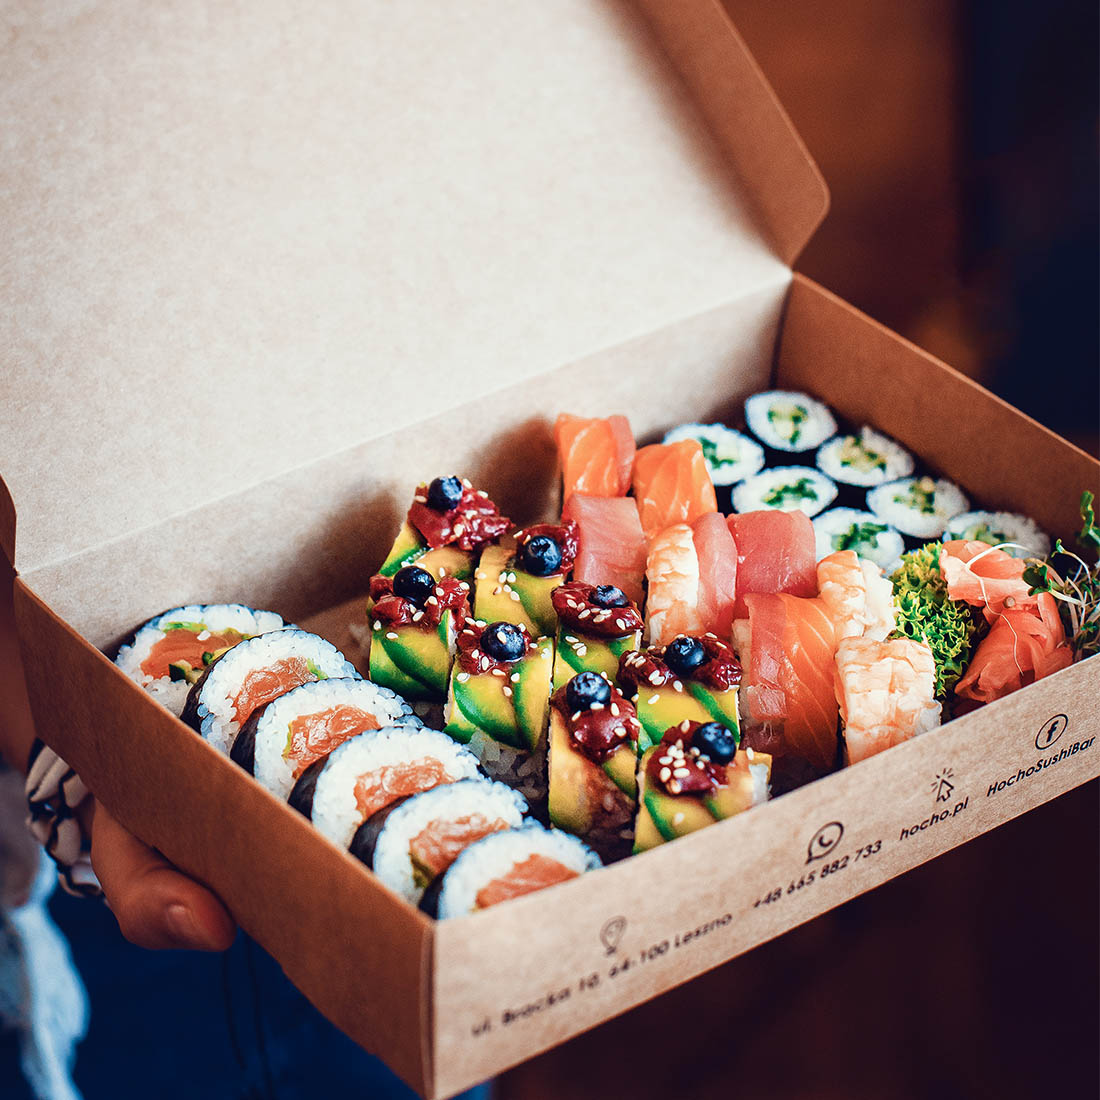 Sushi boxes made entirely of paper will be noticed and appreciated by your customers